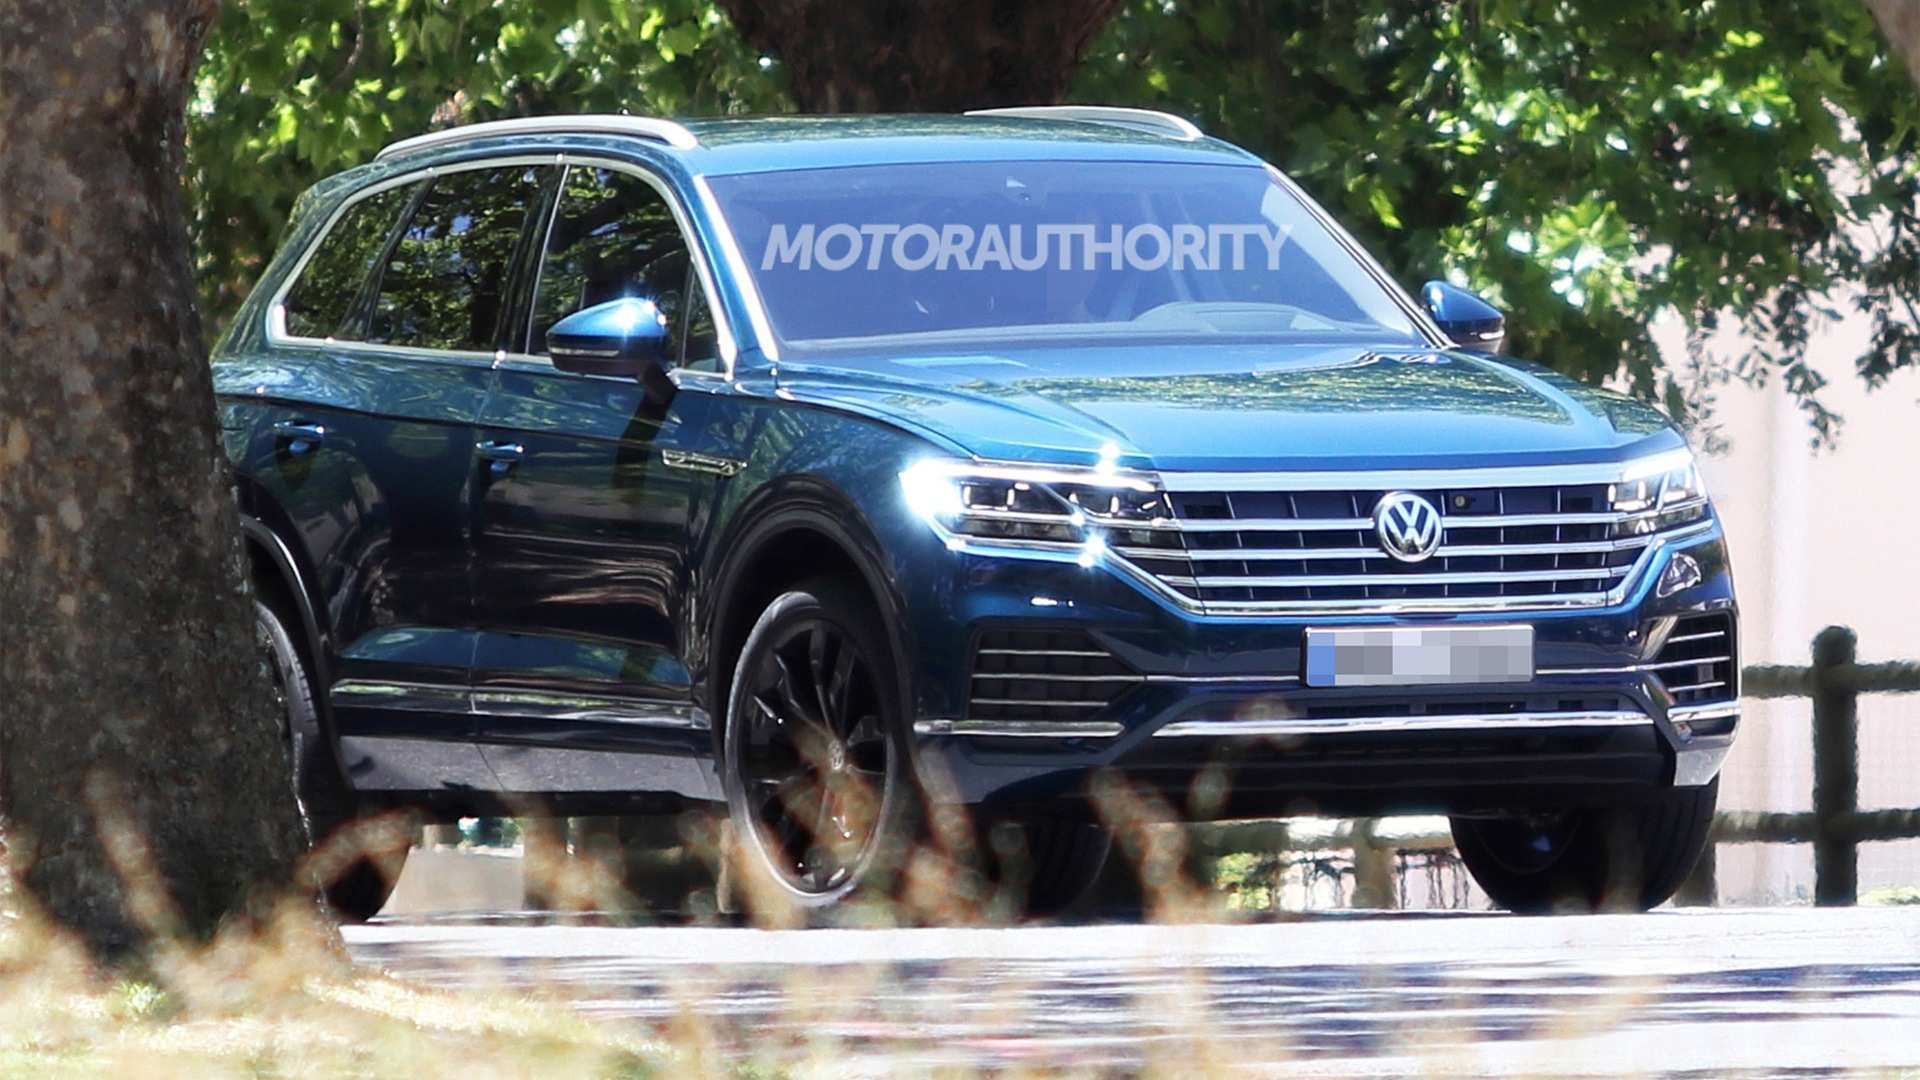 56 Gallery of VW Touareg 2020 New Concept Spesification with VW Touareg 2020 New Concept